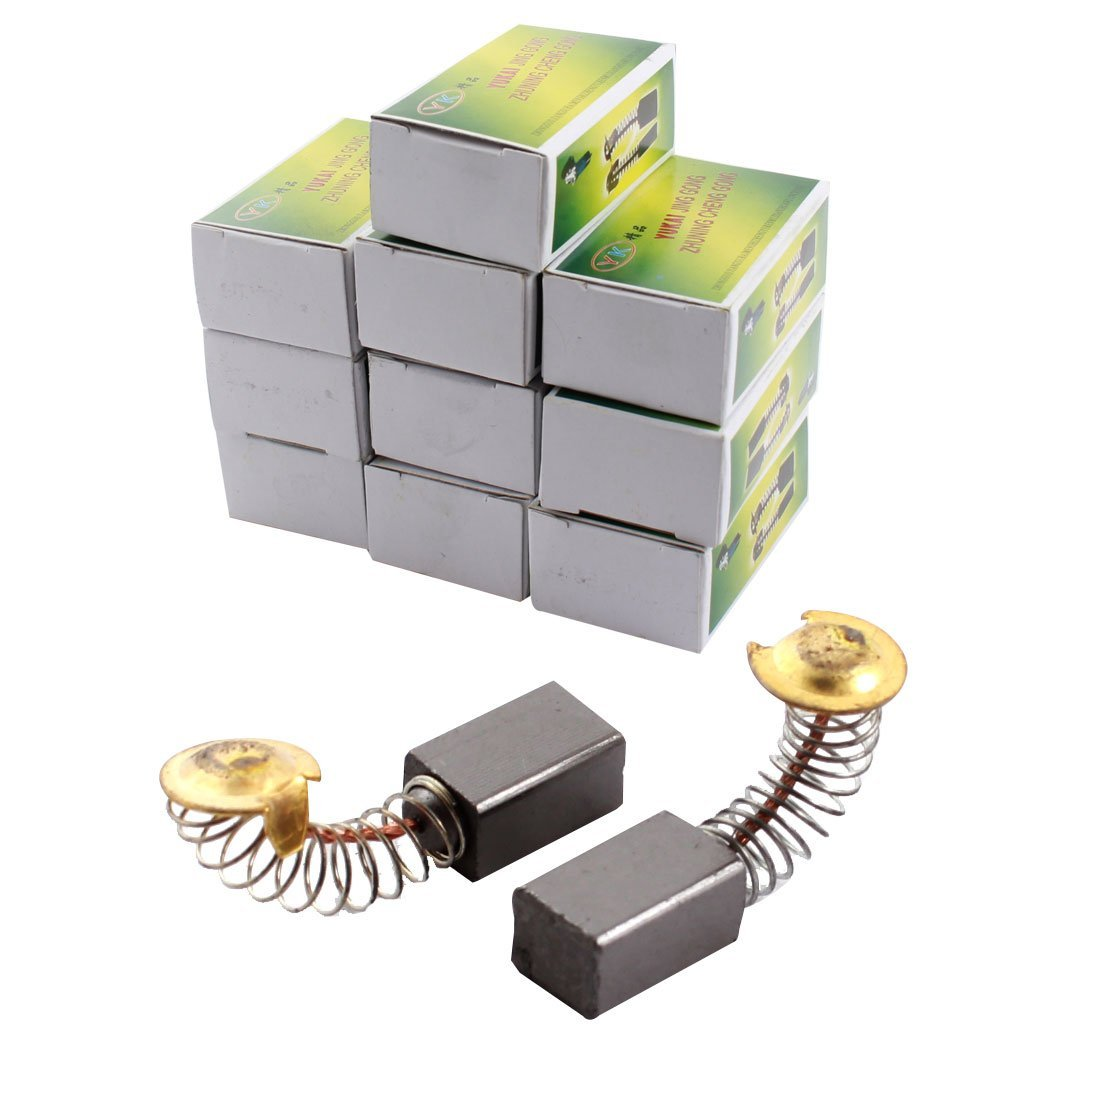 10 Pairs Universal Electric Motor Replacing Carbon Brushes 8x7x12mm